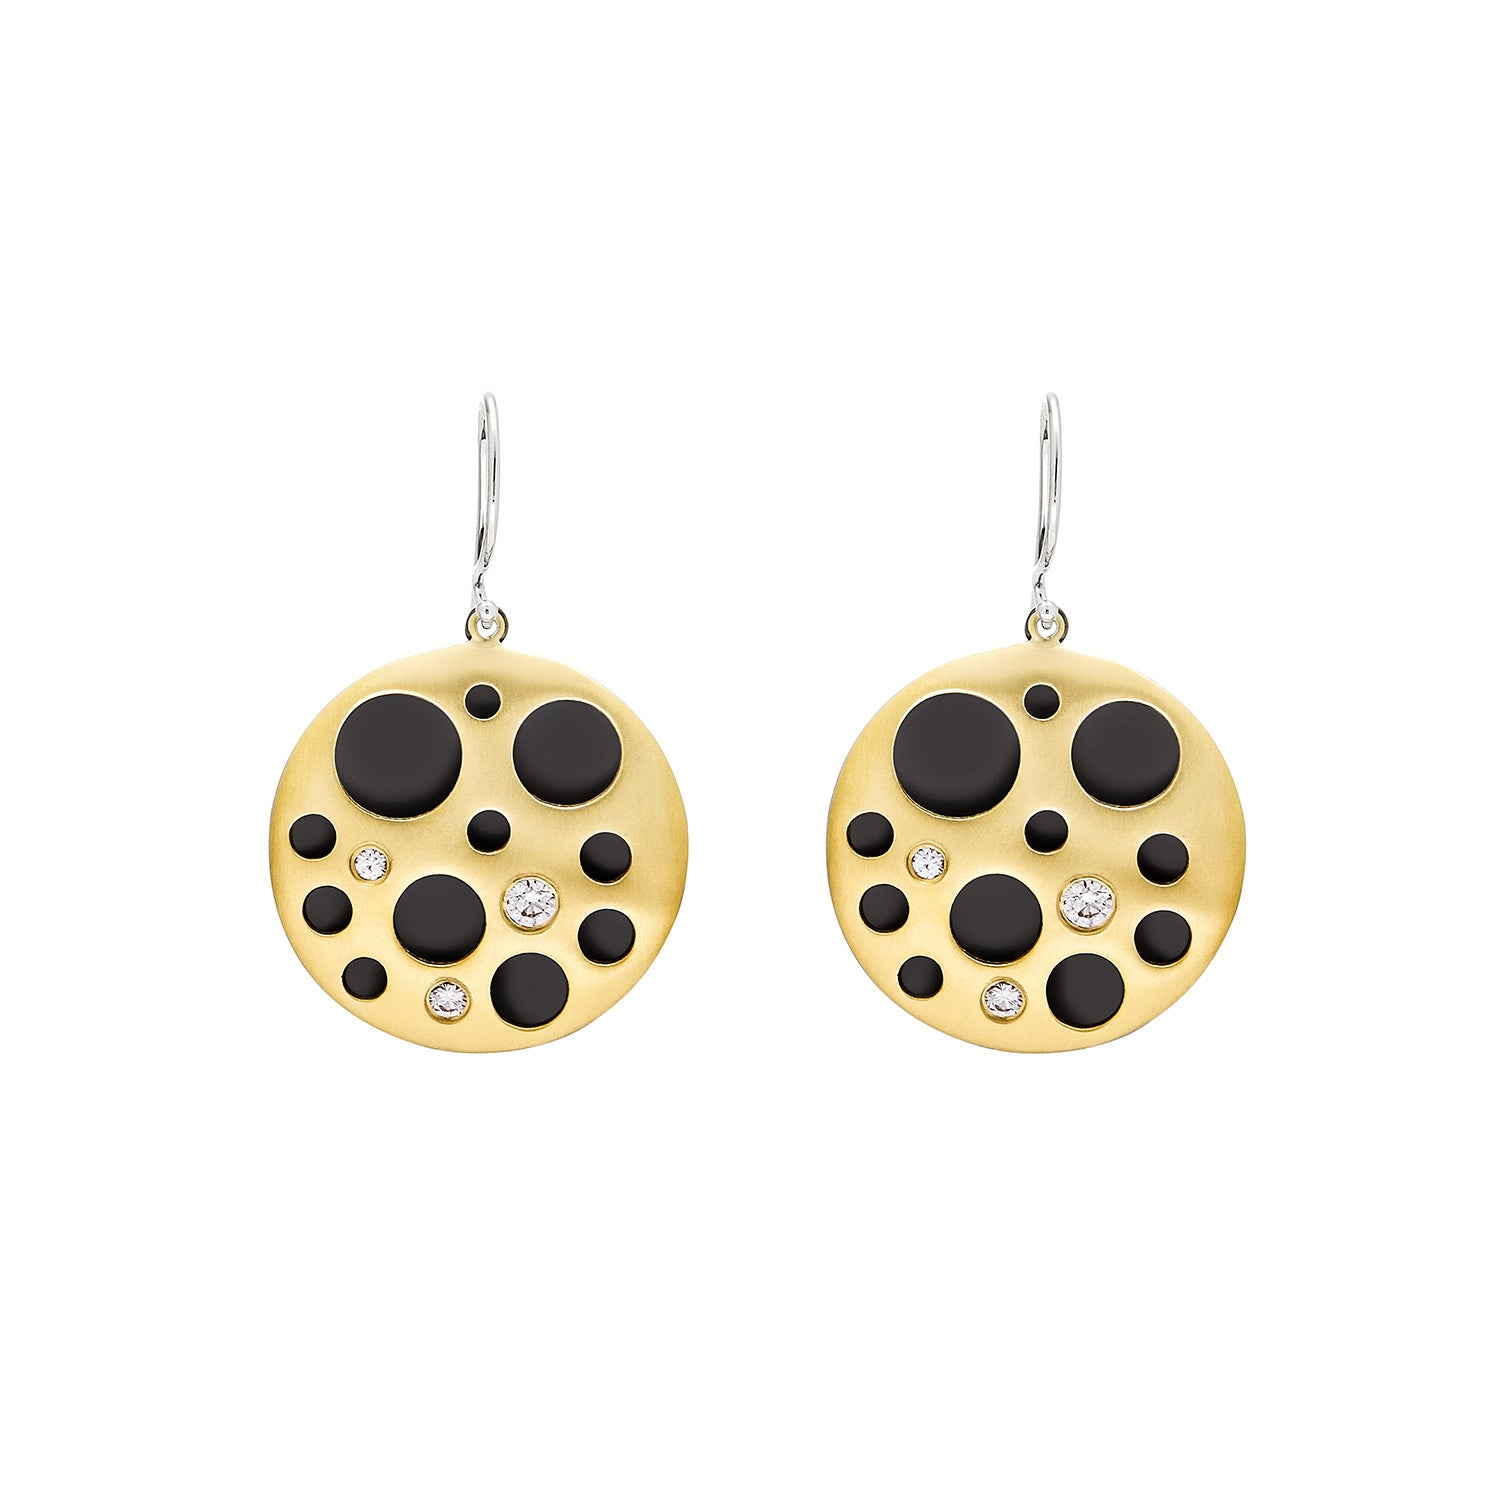 Diamond Hollow Coin Earrings